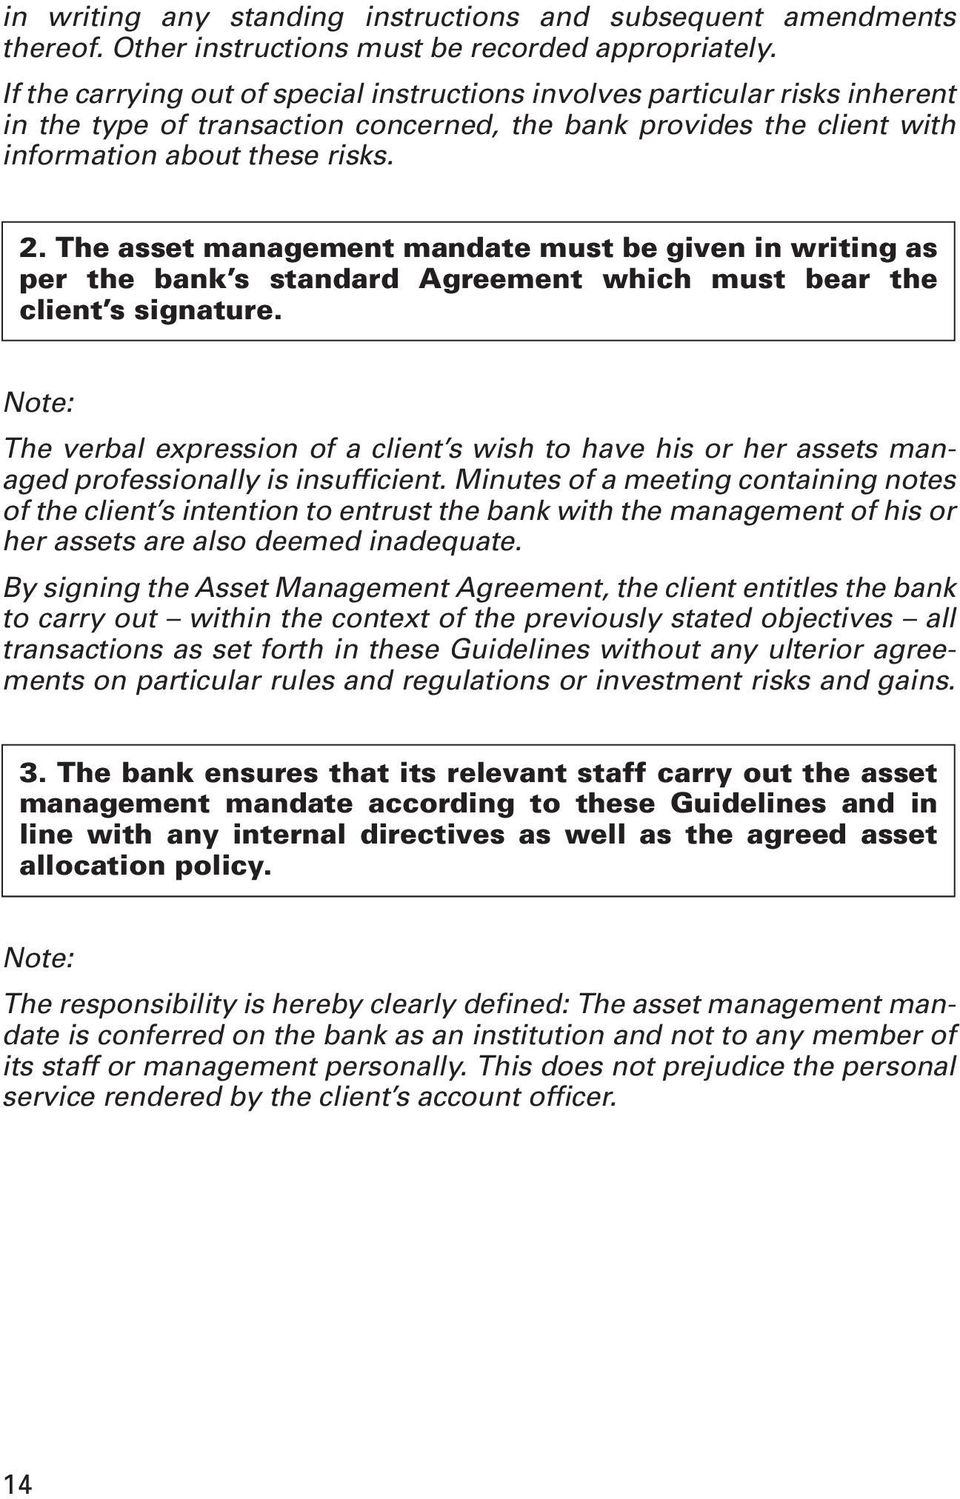 The asset management mandate must be given in writing as per the bank s standard Agreement which must bear the client s signature.